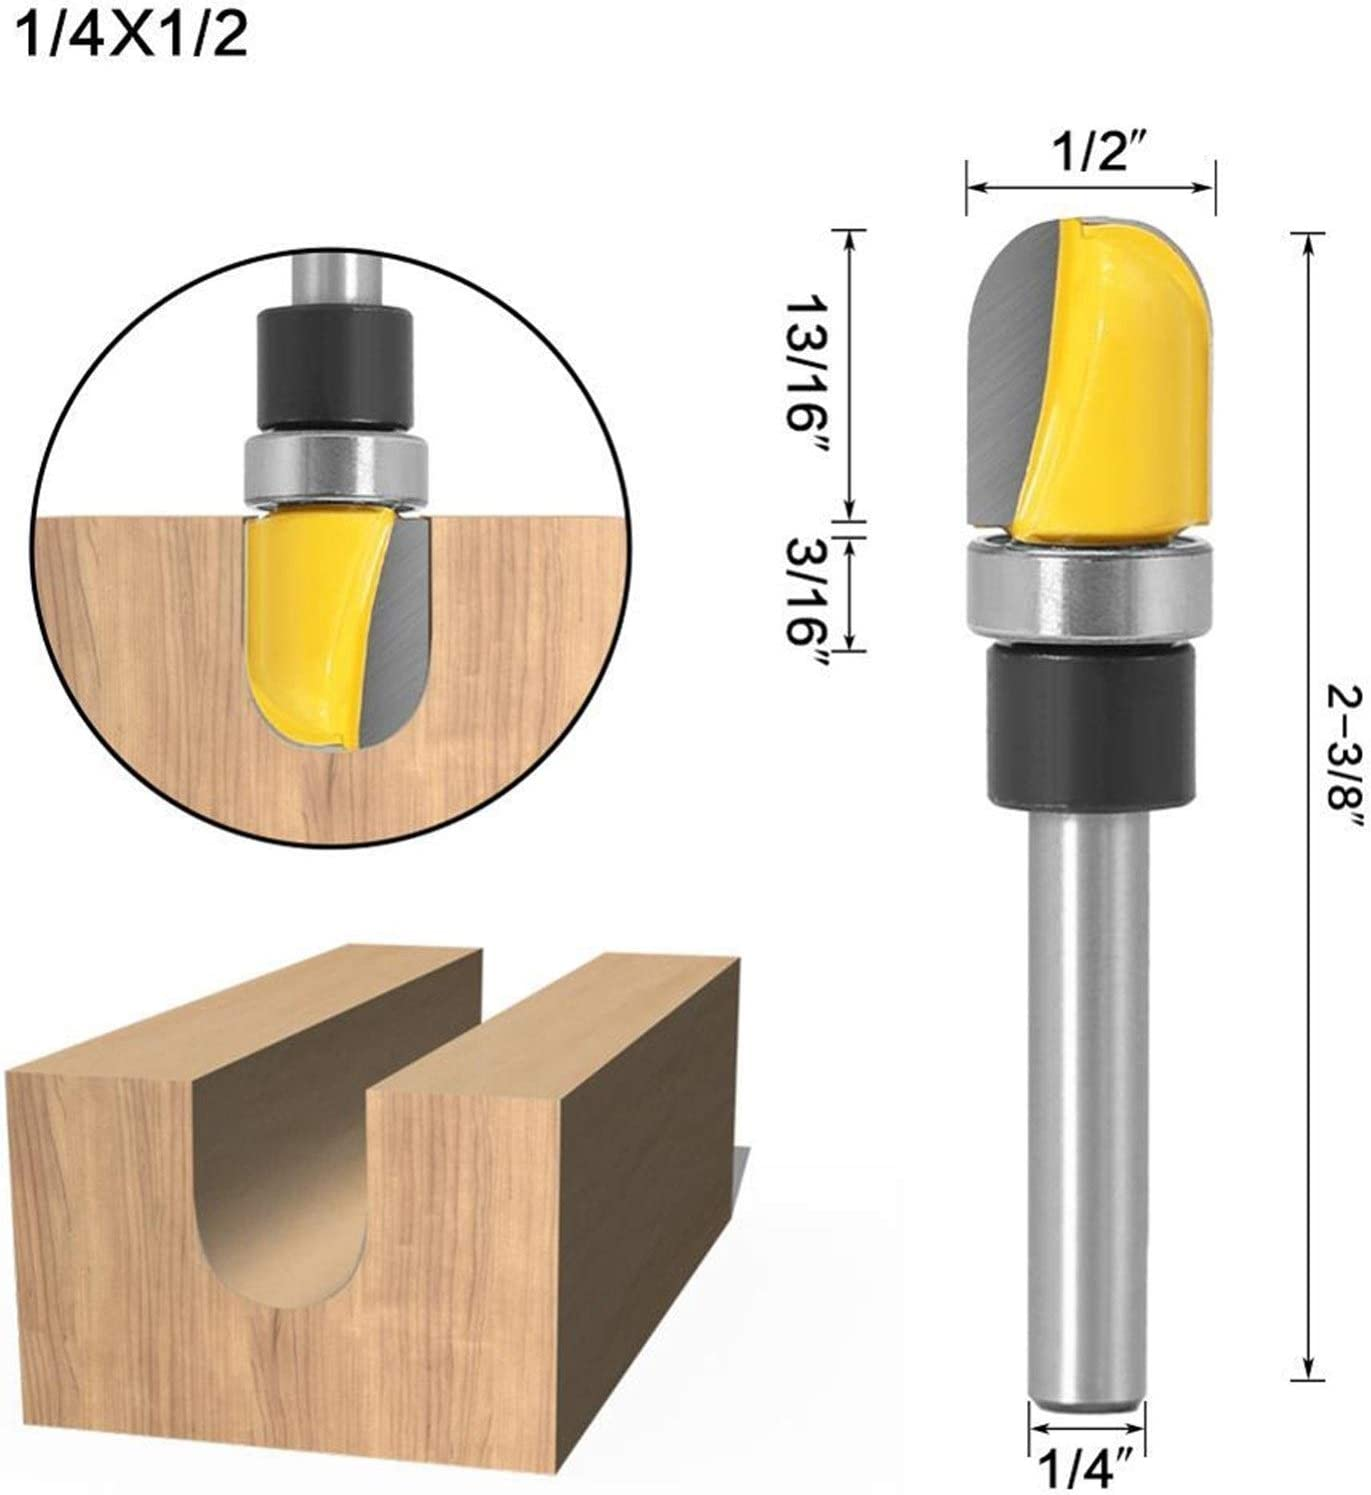 Jinchao-Router bits Cutting Edge Length : 6.35X12.7 6mm Shank Round-Nose Plunge Router Bit Shank Bearing for Woodworking Cutting Tool 1//4 1pc for Home /& DIY